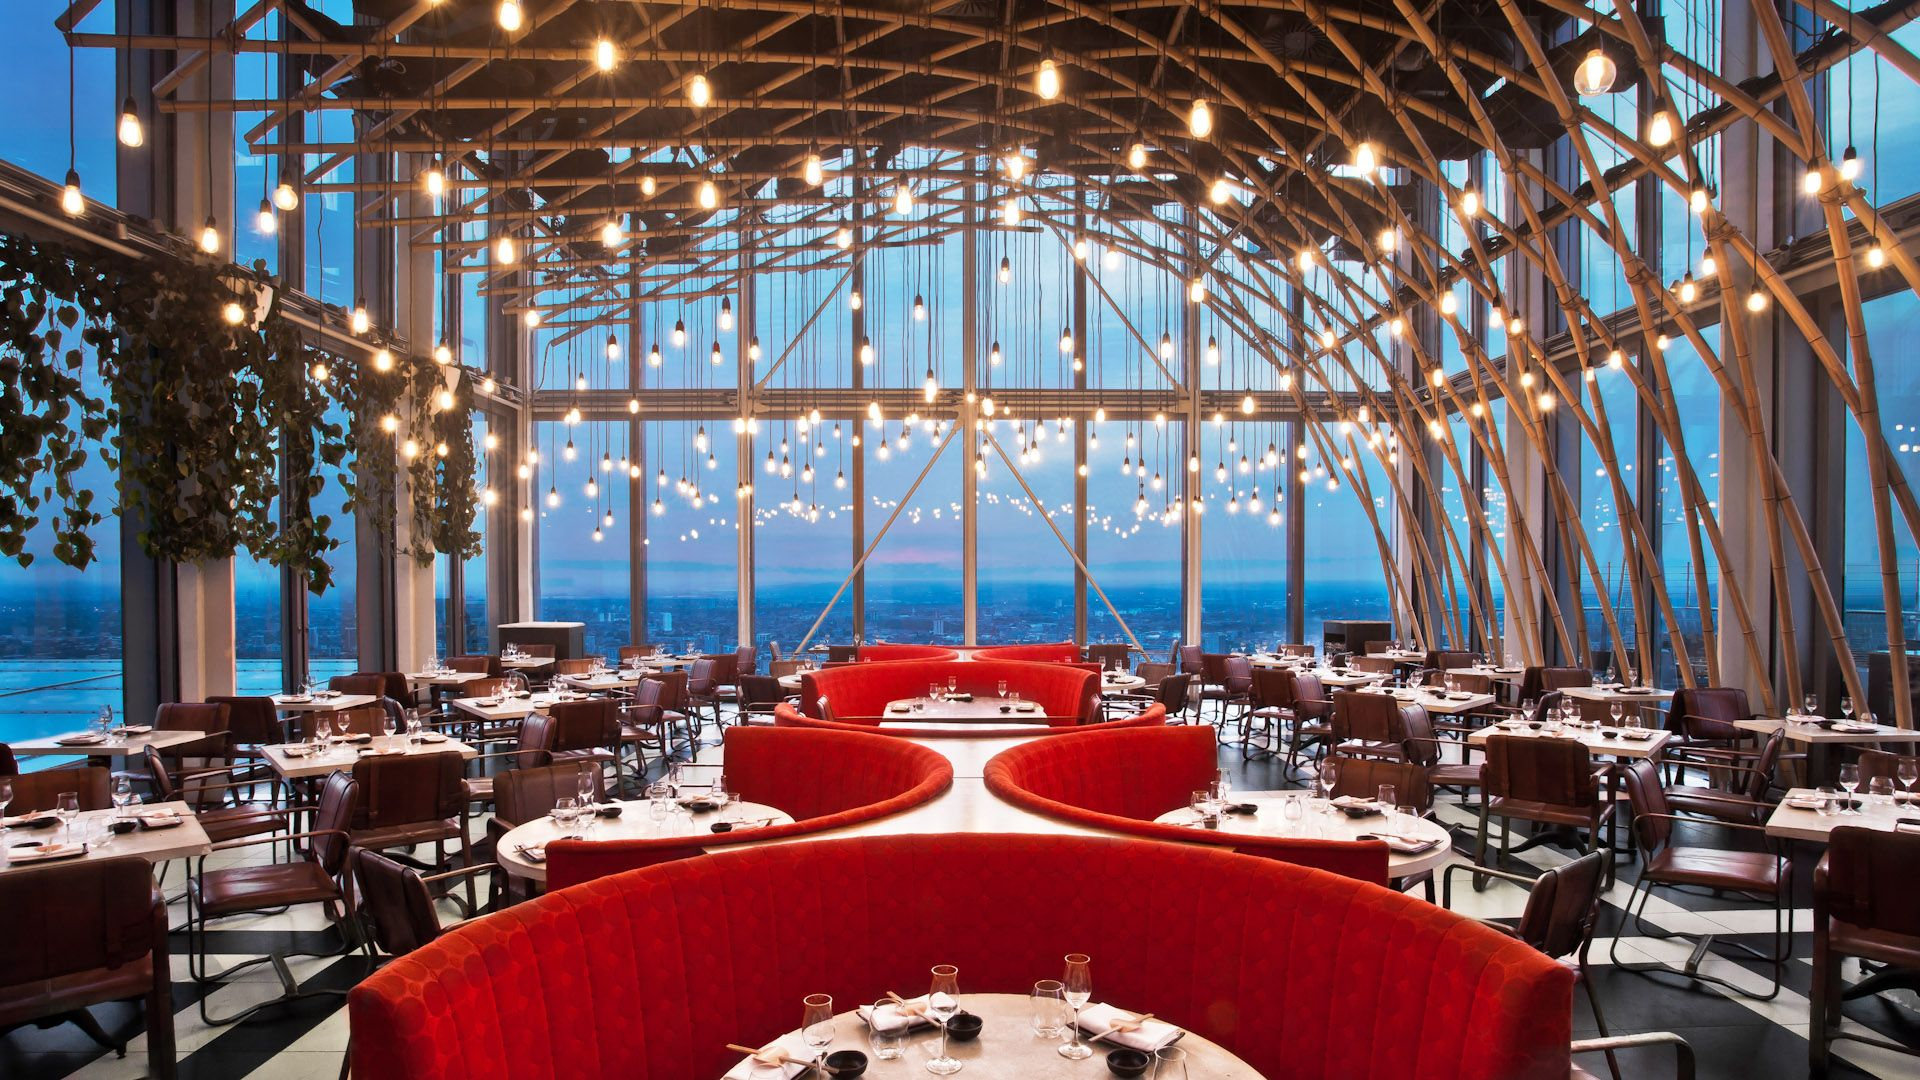 One of our images of the Sushi Samba restaurant in Heron Tower ...